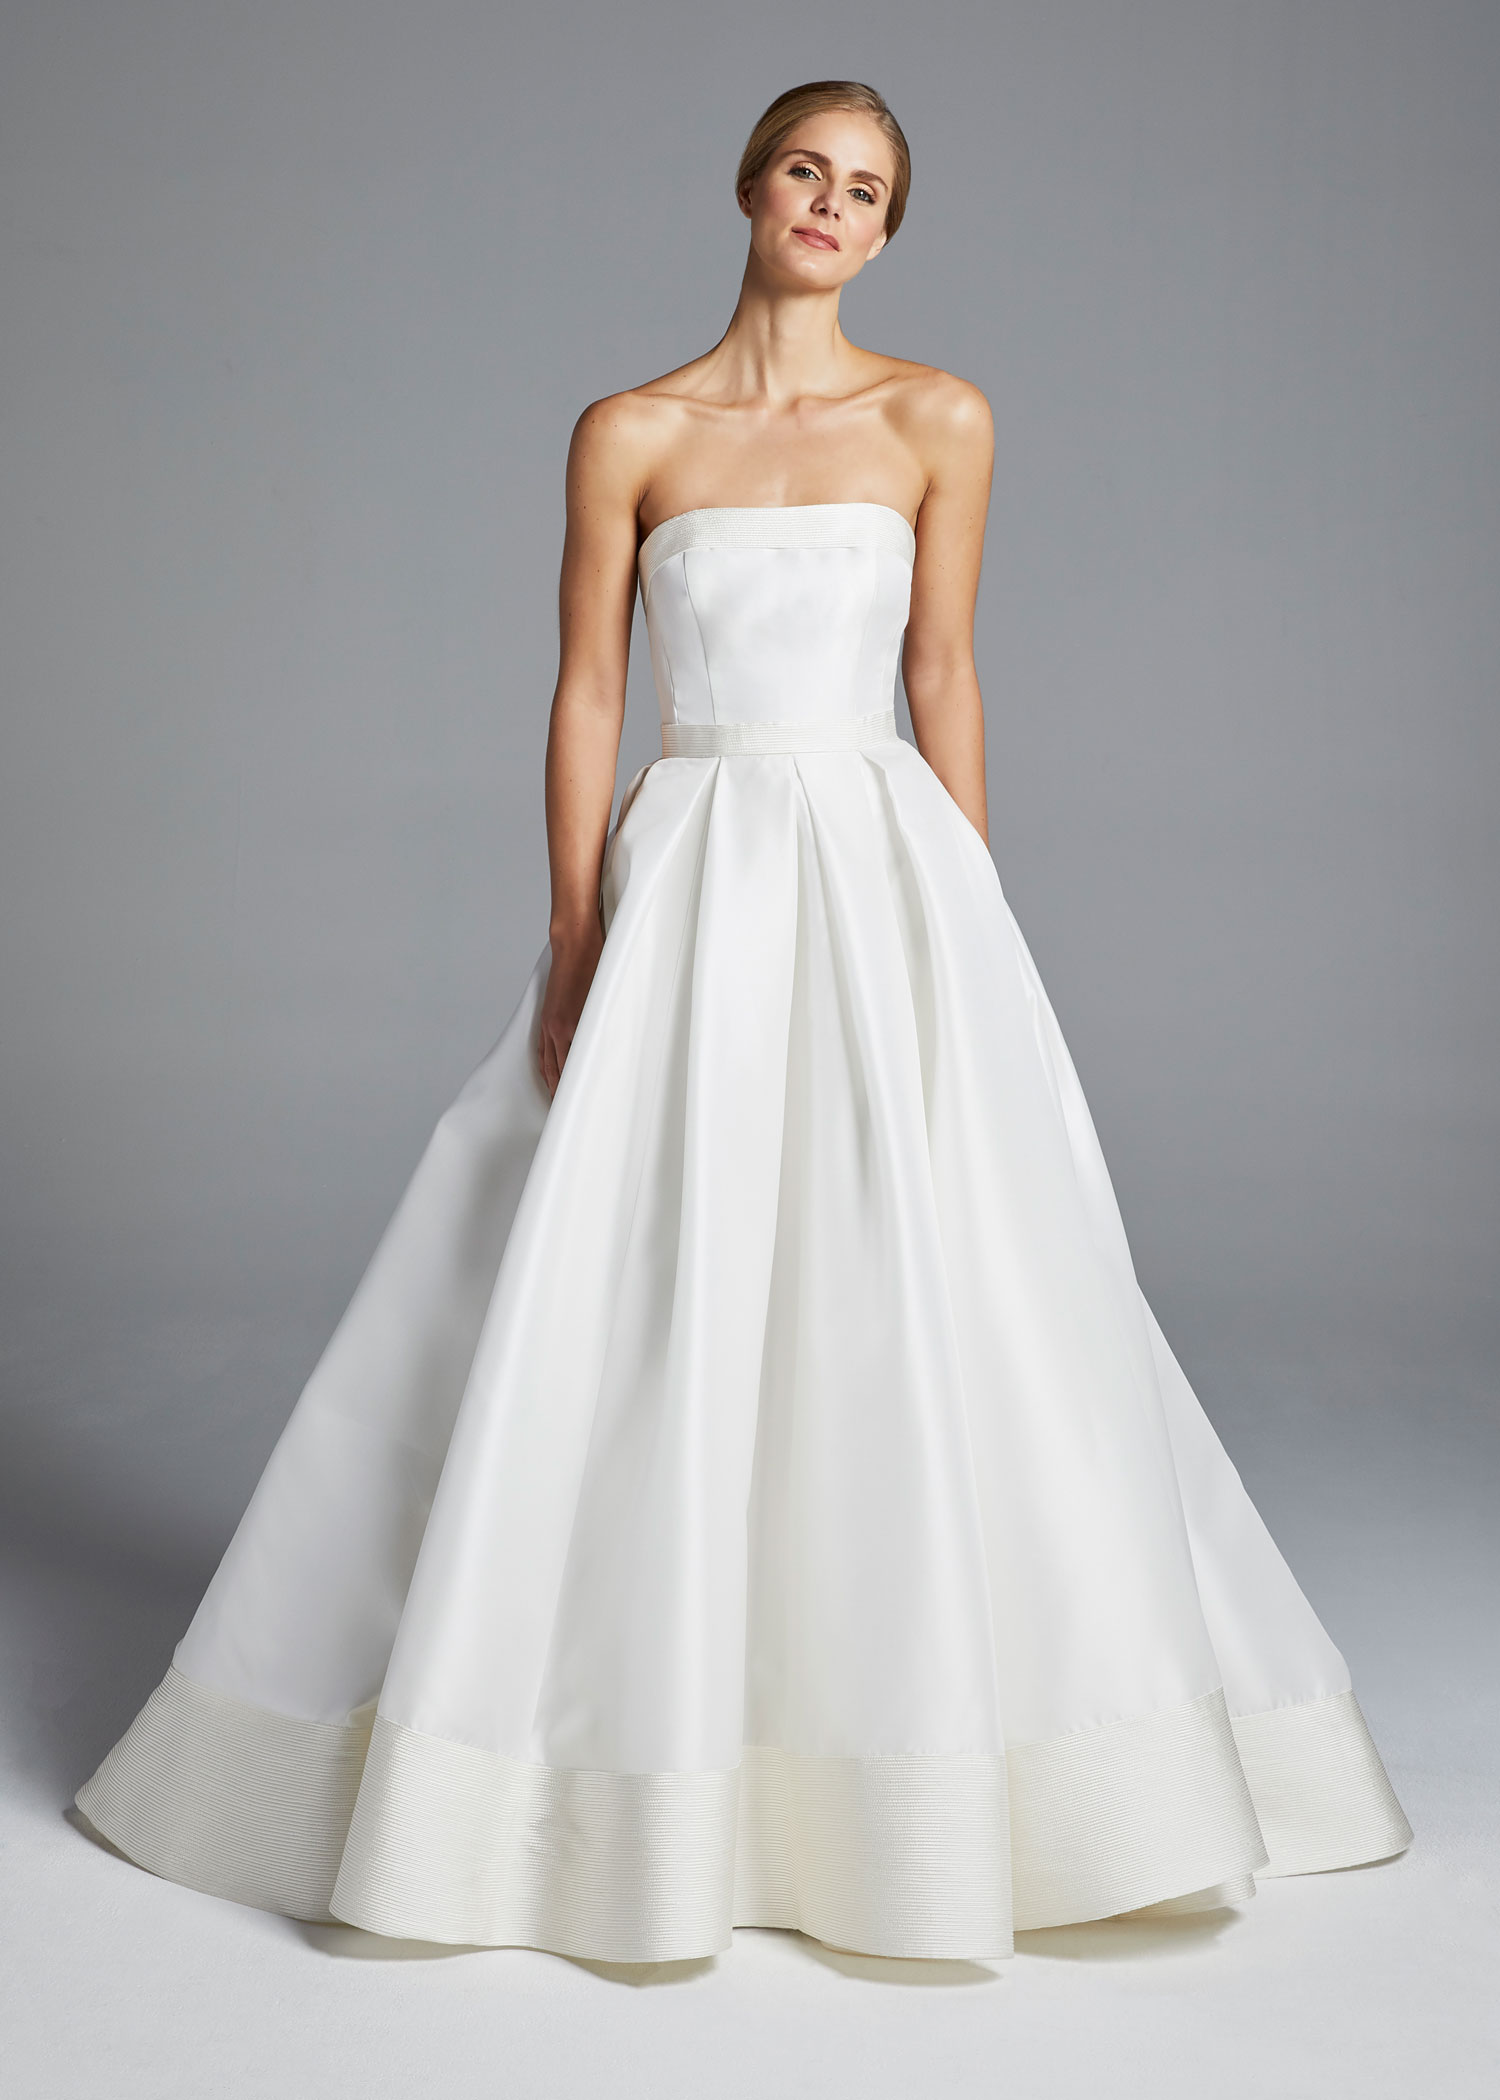 3f3d5a90376 Anne Barge Spring 2019 collection strapless ball gown with pleats and  soutache bands